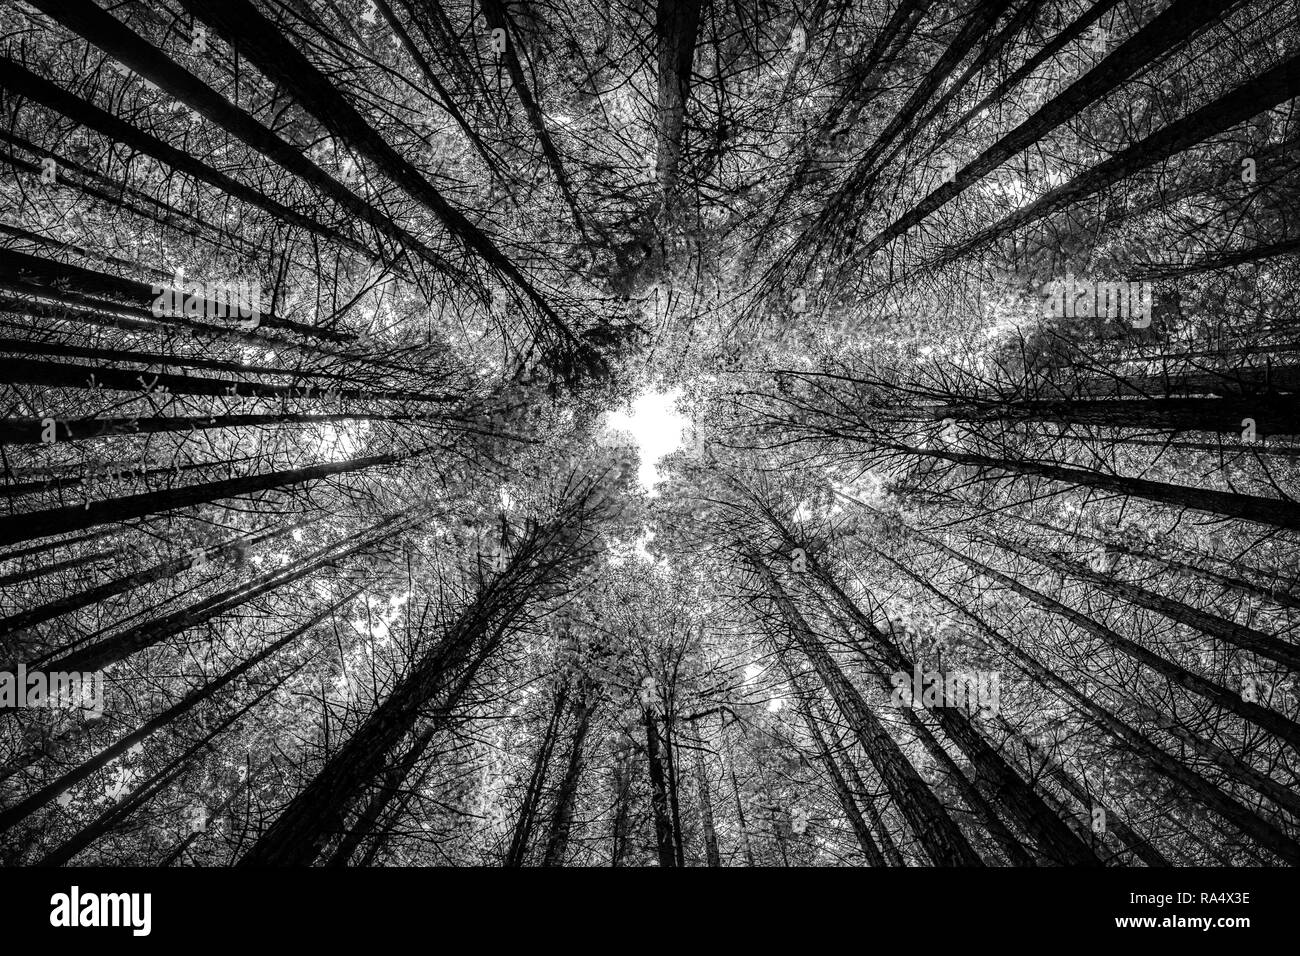 High trees in redwood forest viewed from below in infrared black and white effect. Nature background concept - Stock Image